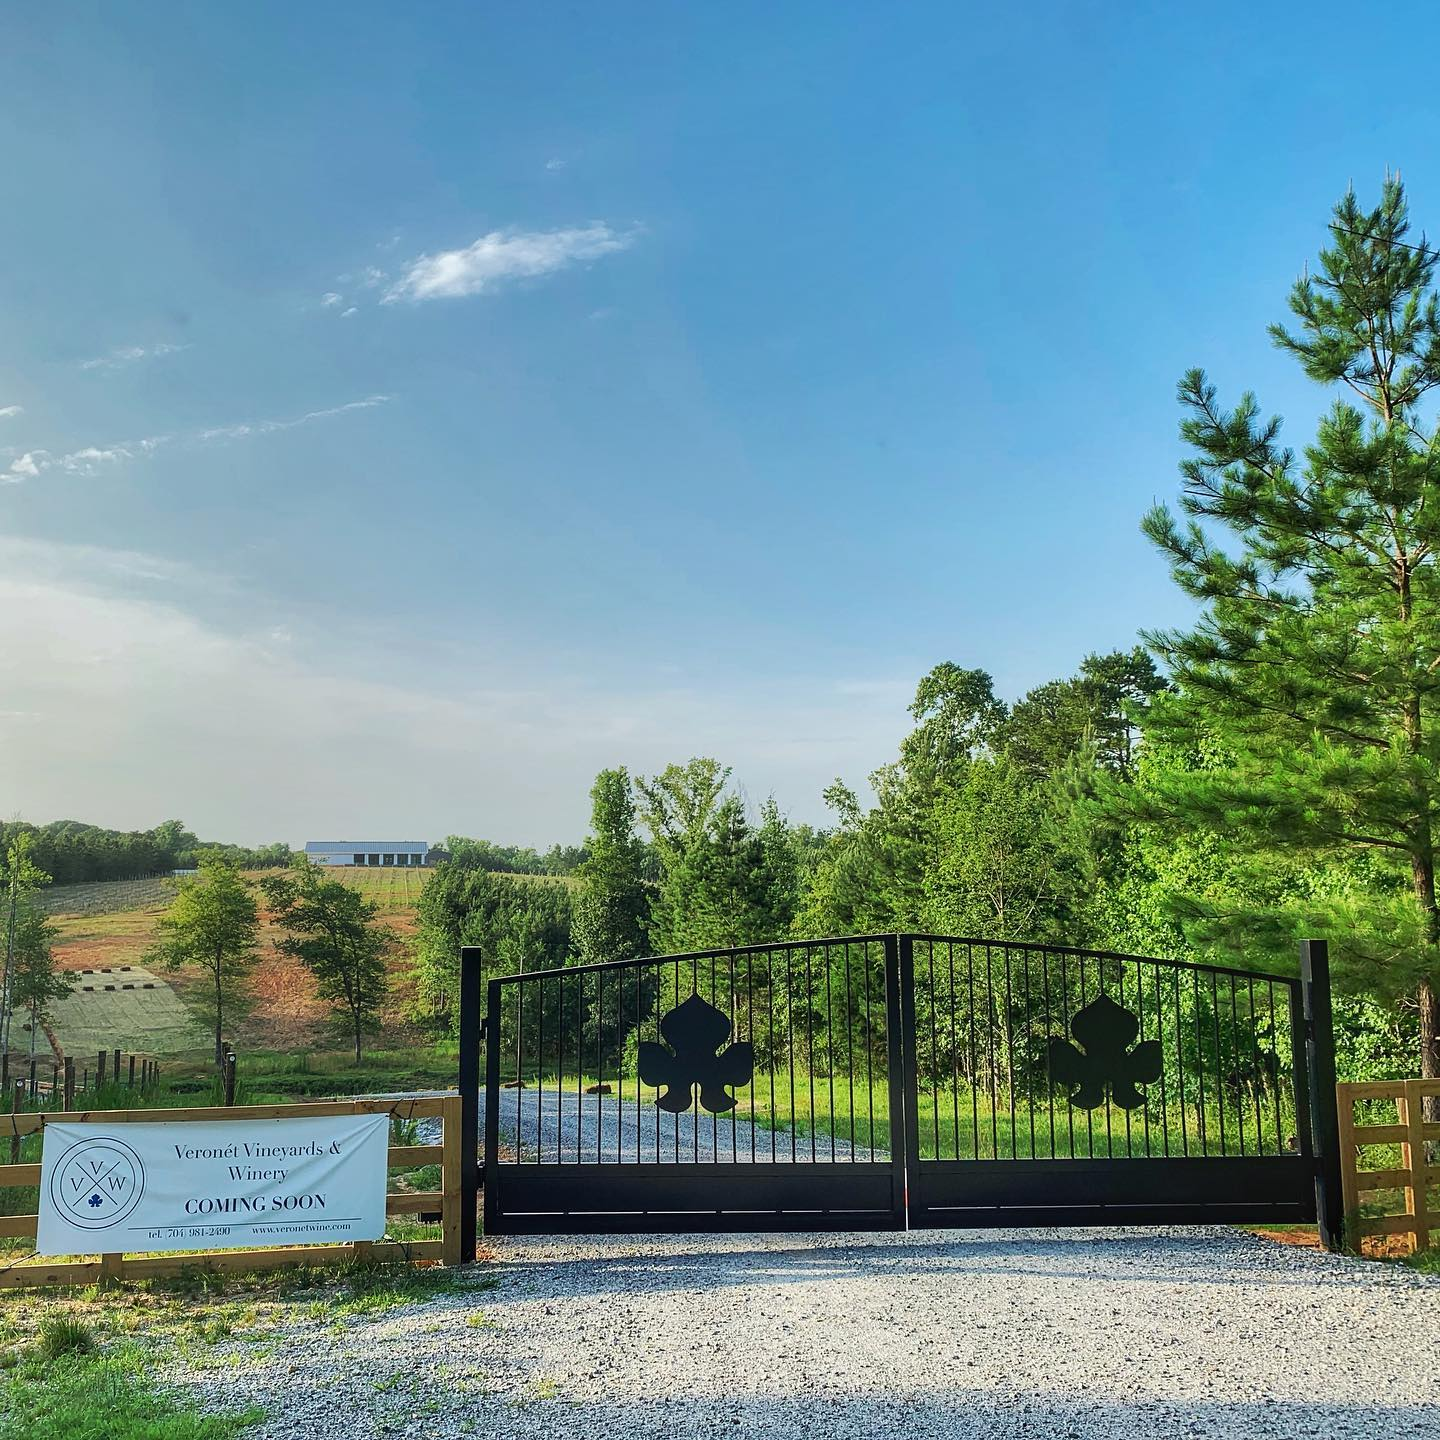 Veronét Vineyards & Winery, Vineyard Opening 10 Miles from Gastonia